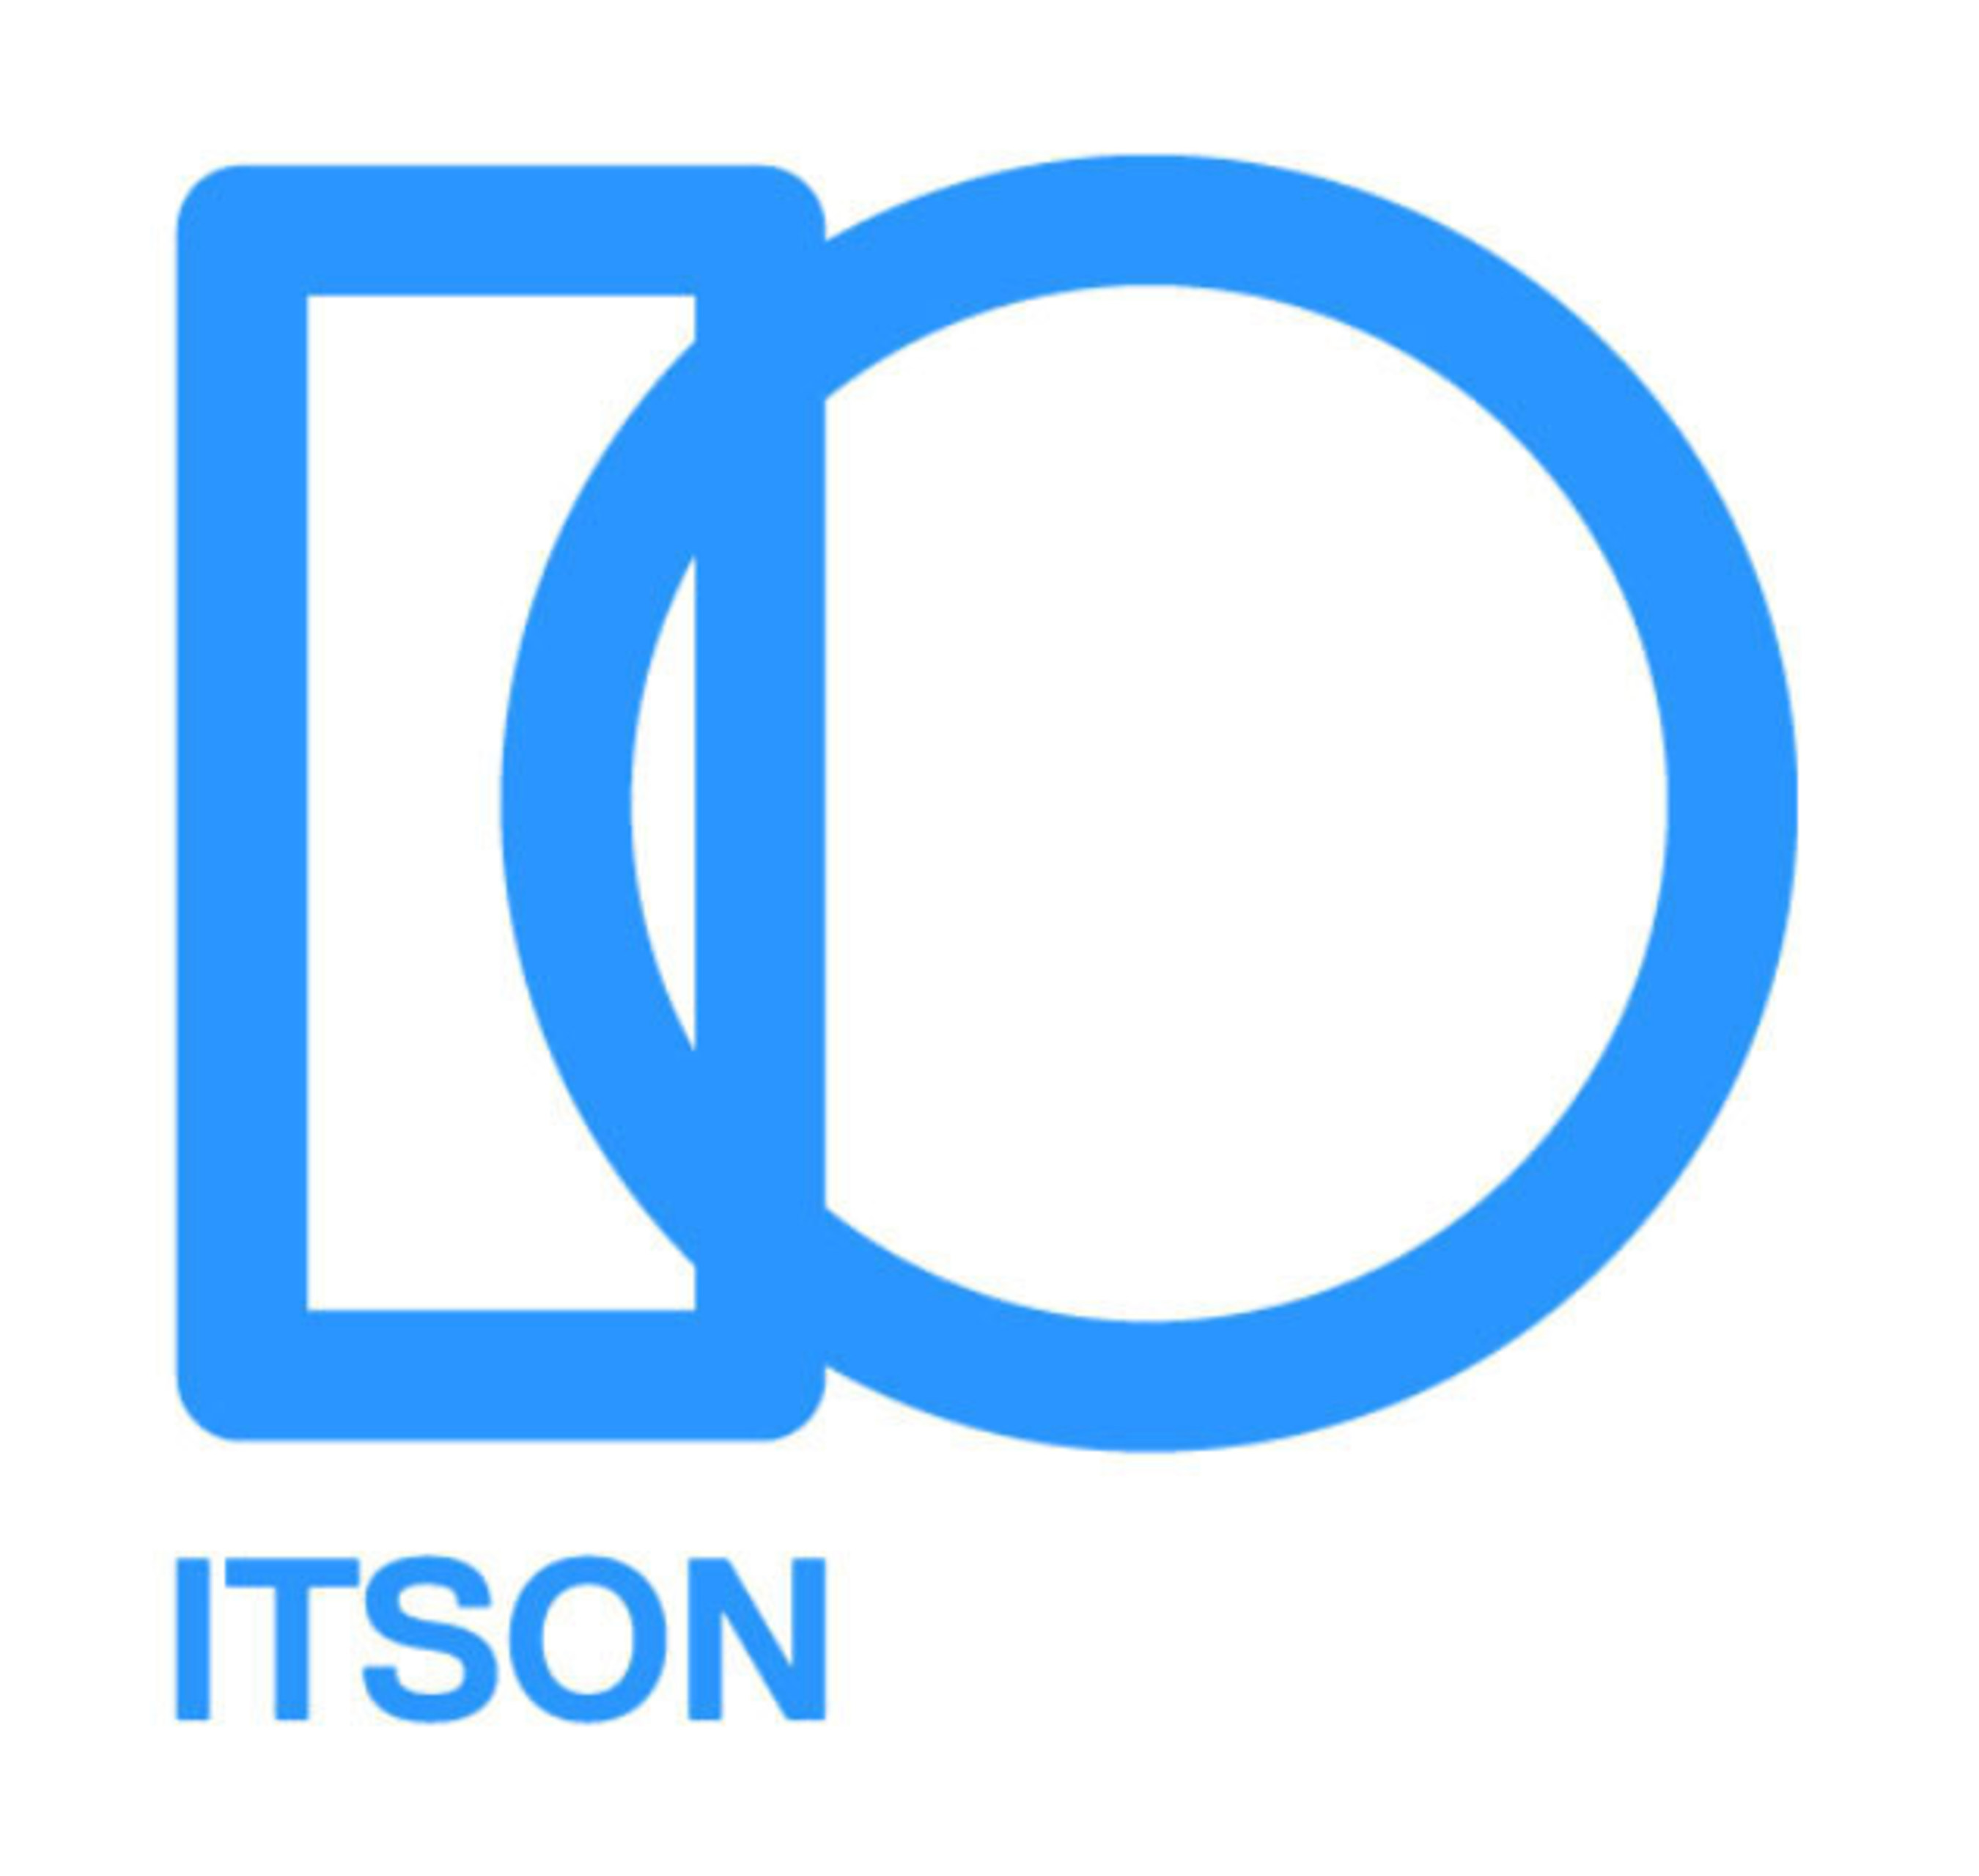 ItsOn CEO Greg Raleigh to Share Insights about Successful Startups at the Telecom Council TC3 Summit